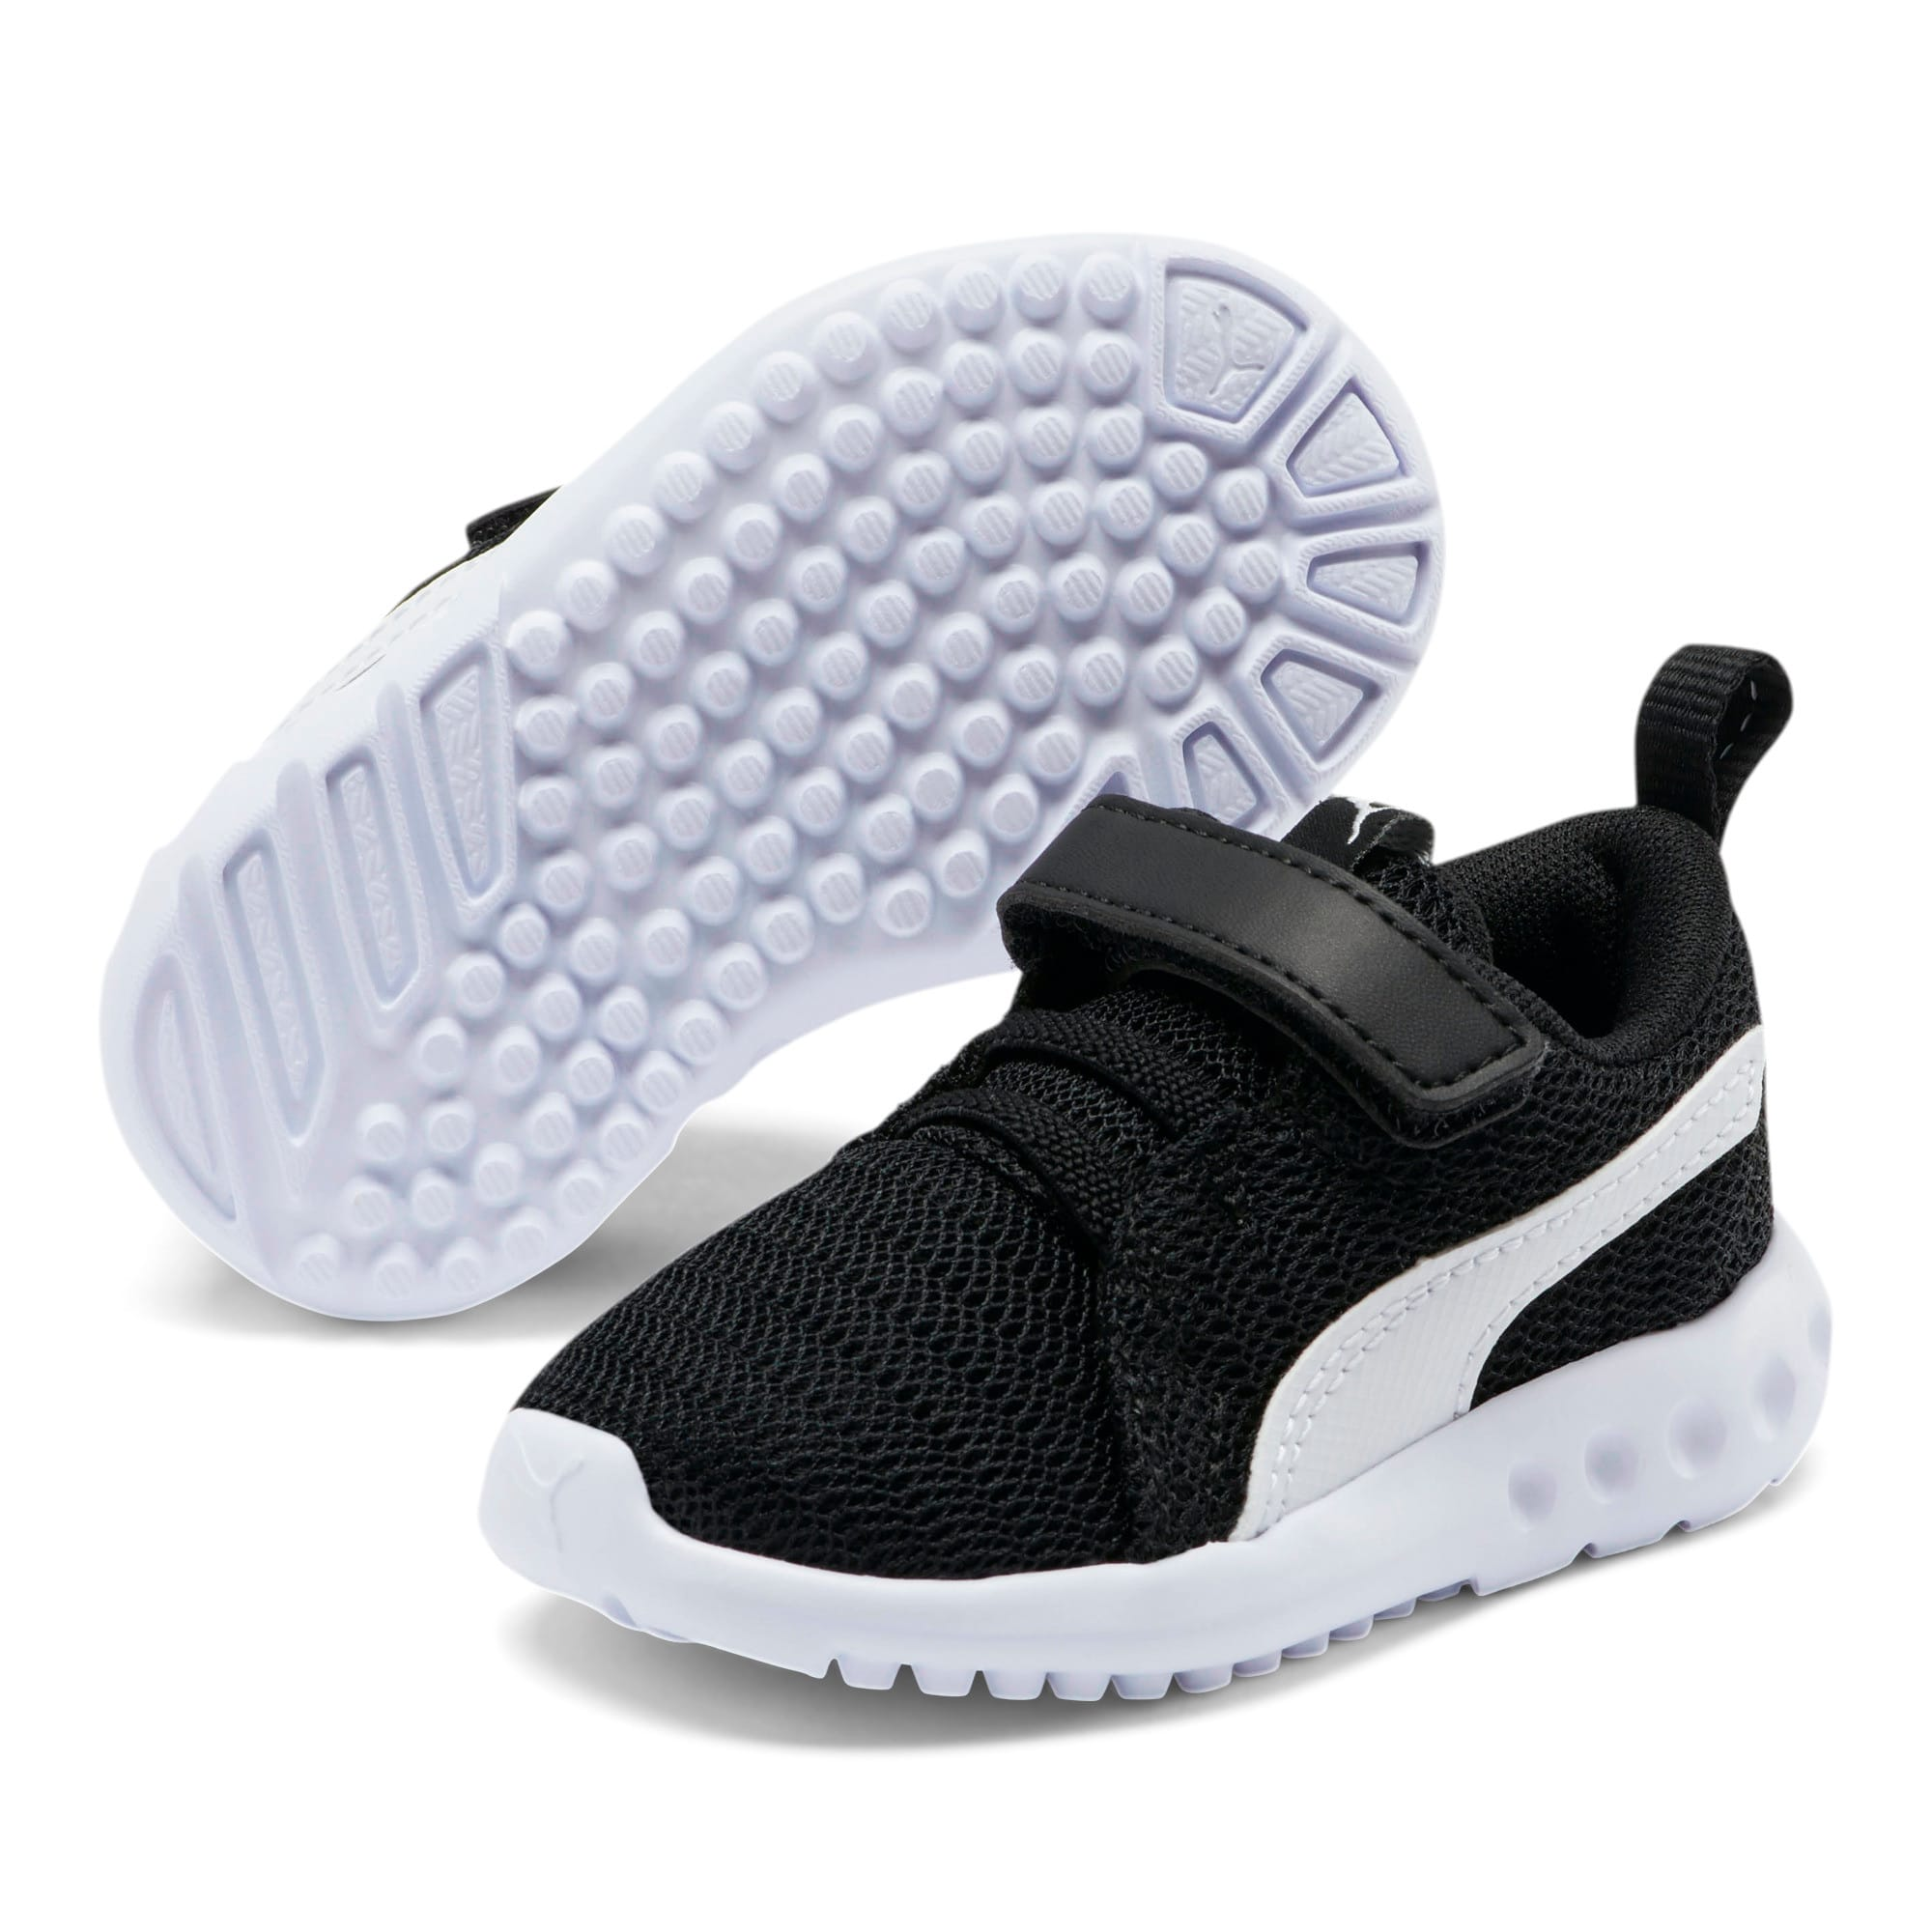 Thumbnail 2 of Carson 2 Toddler Shoes, Puma Black-Puma White, medium